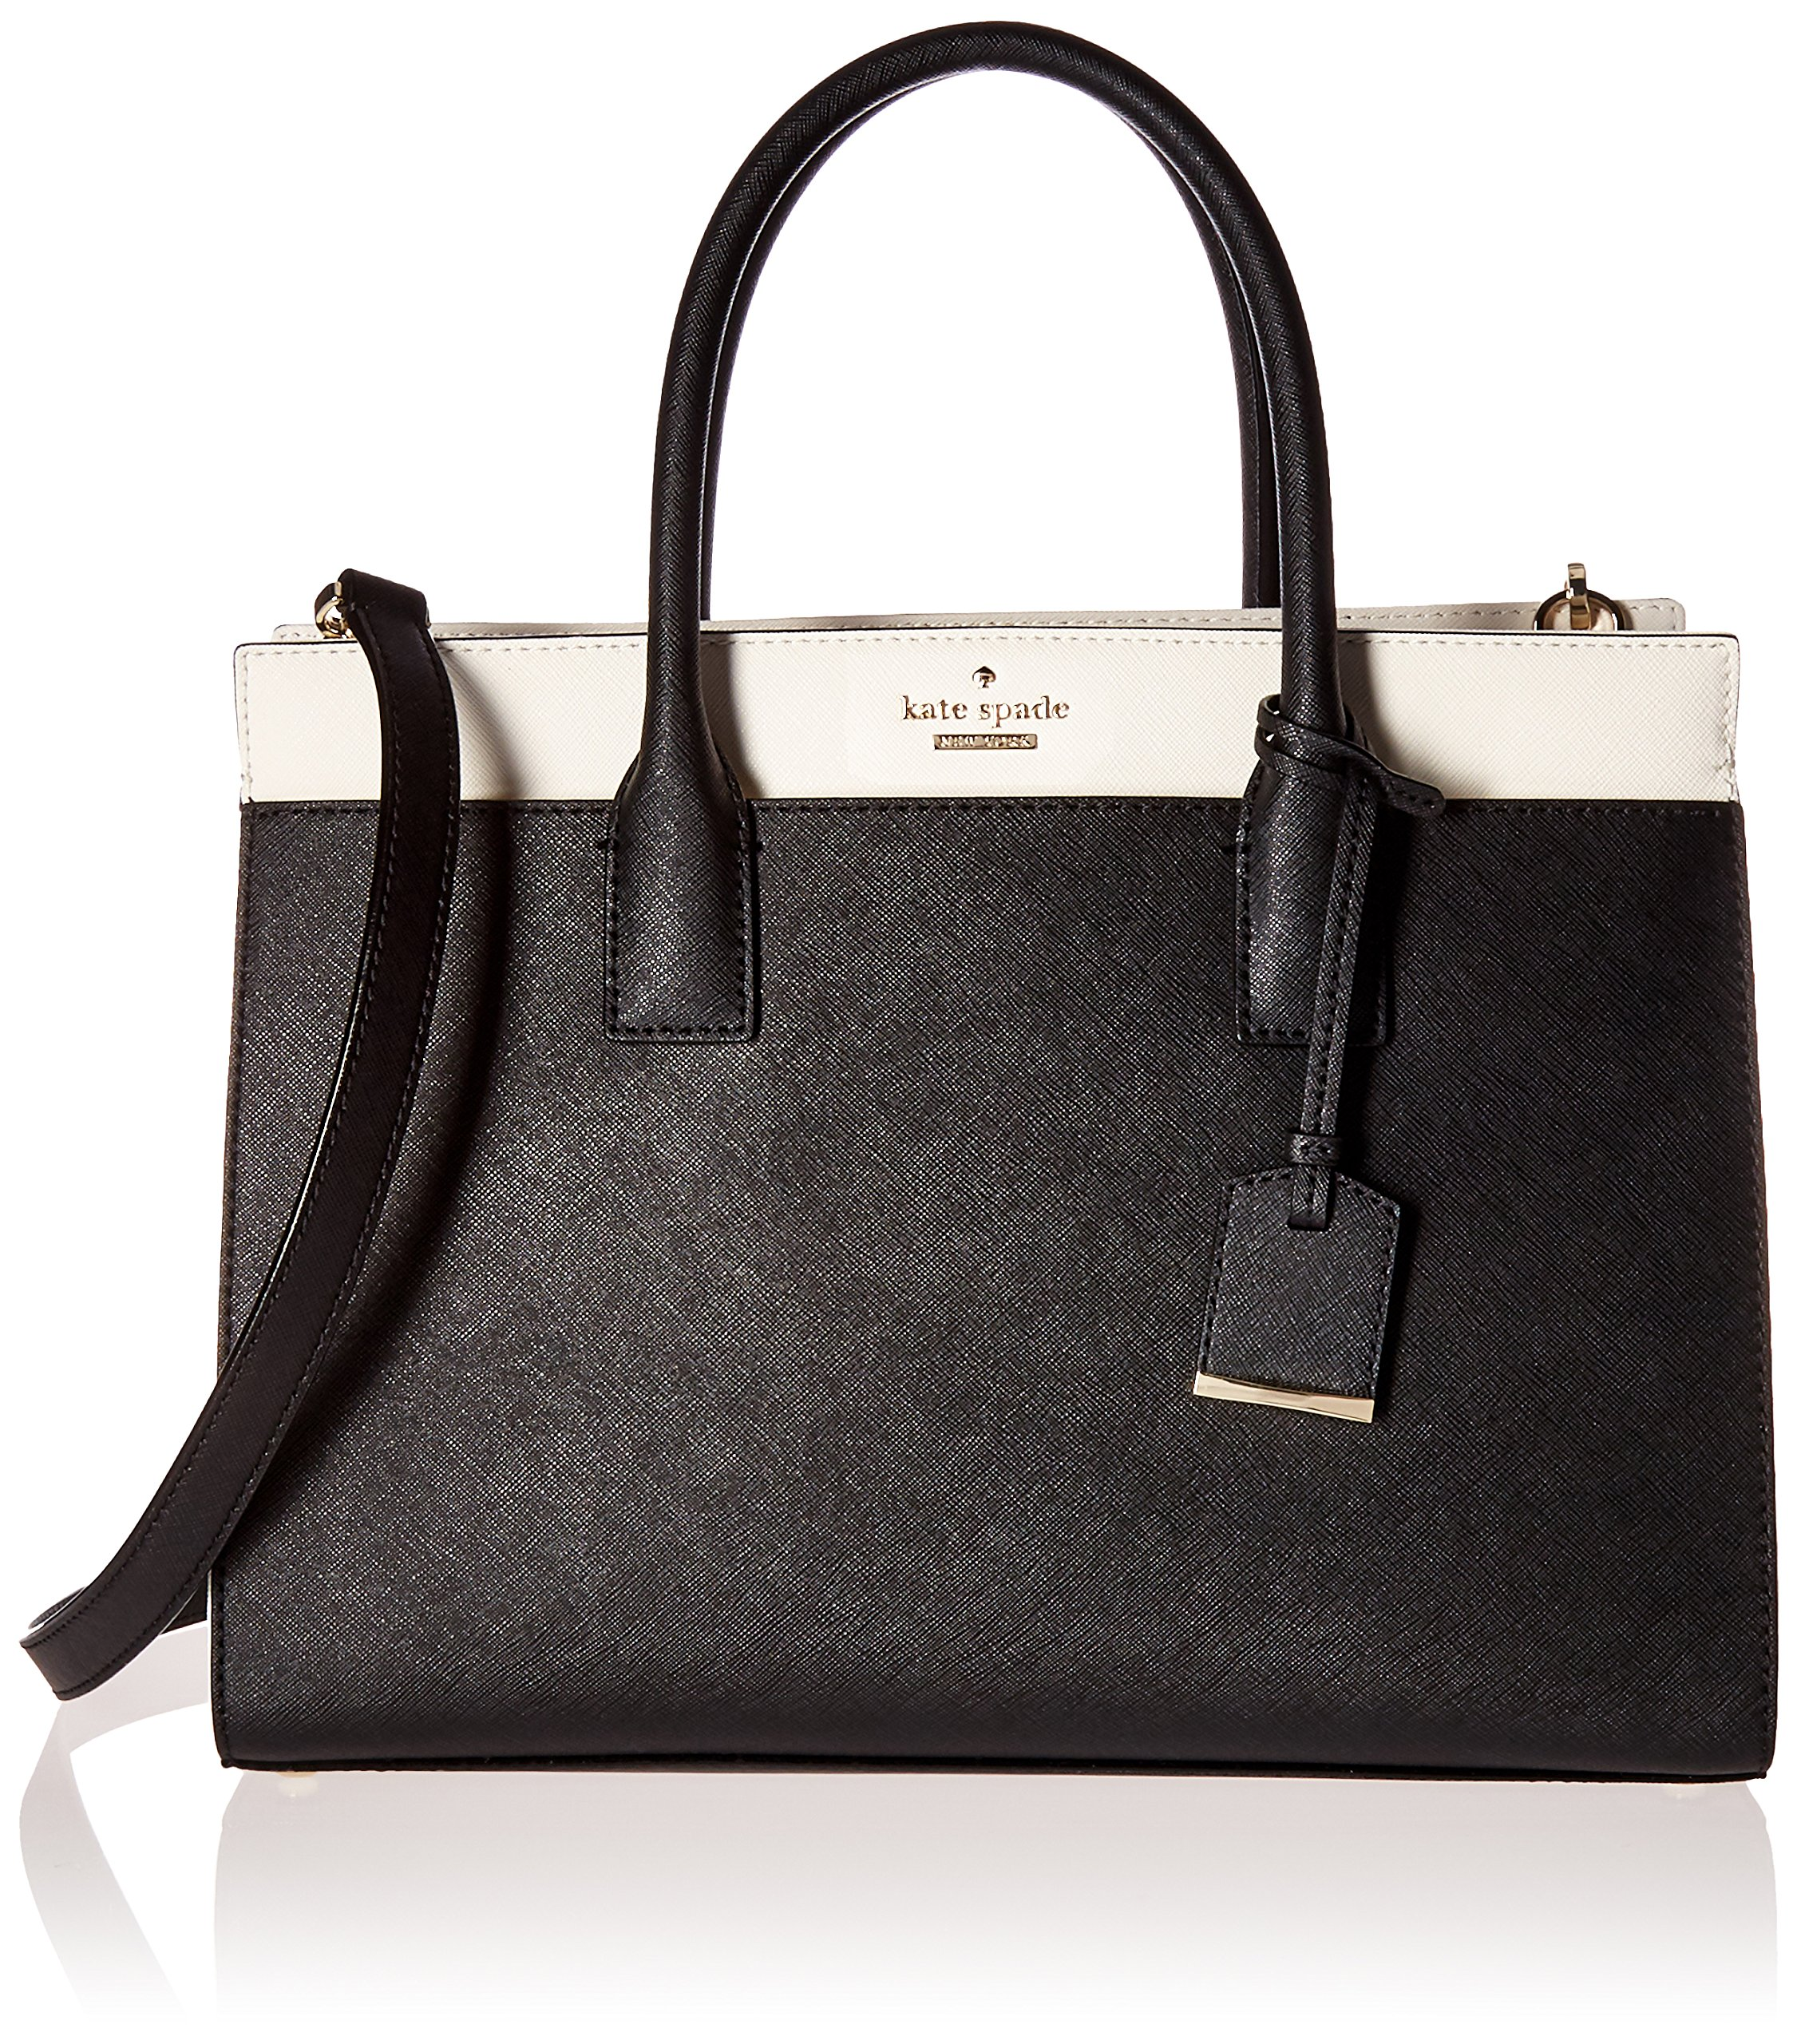 kate spade new york Cameron Street Candace Satchel, Black/Cement